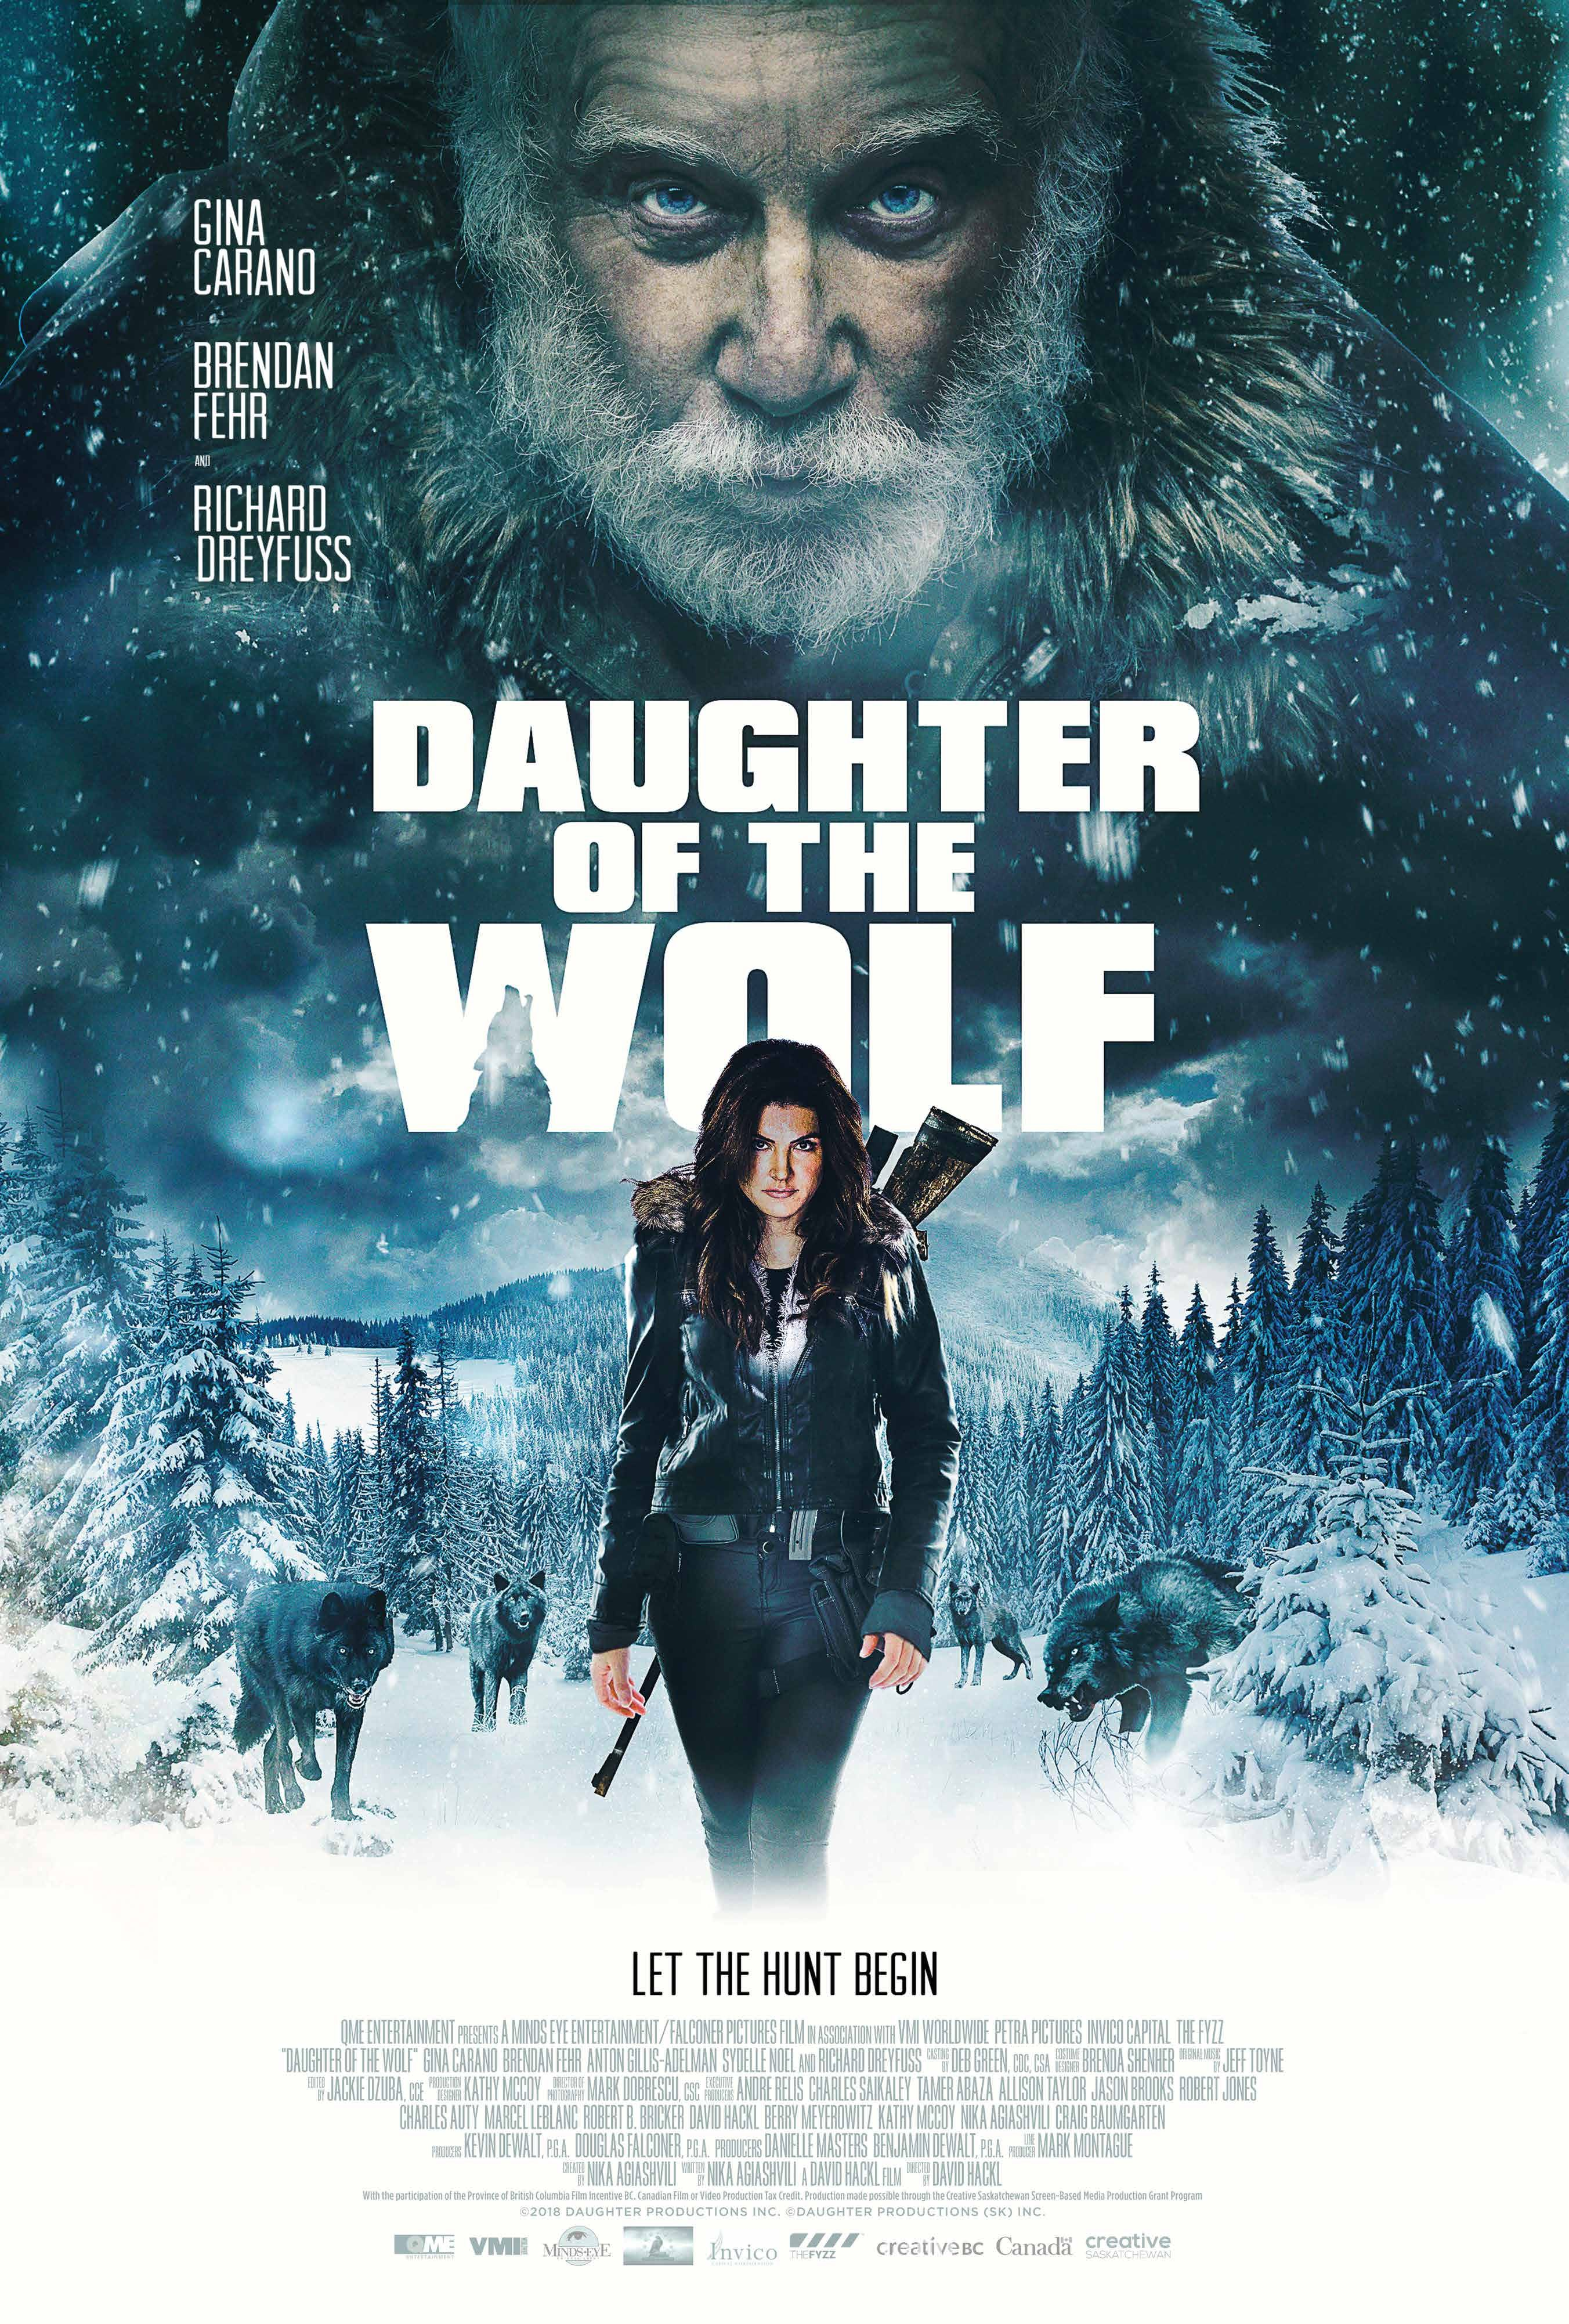 Gina Carano is the Daughter of the Wolf in the trailer for